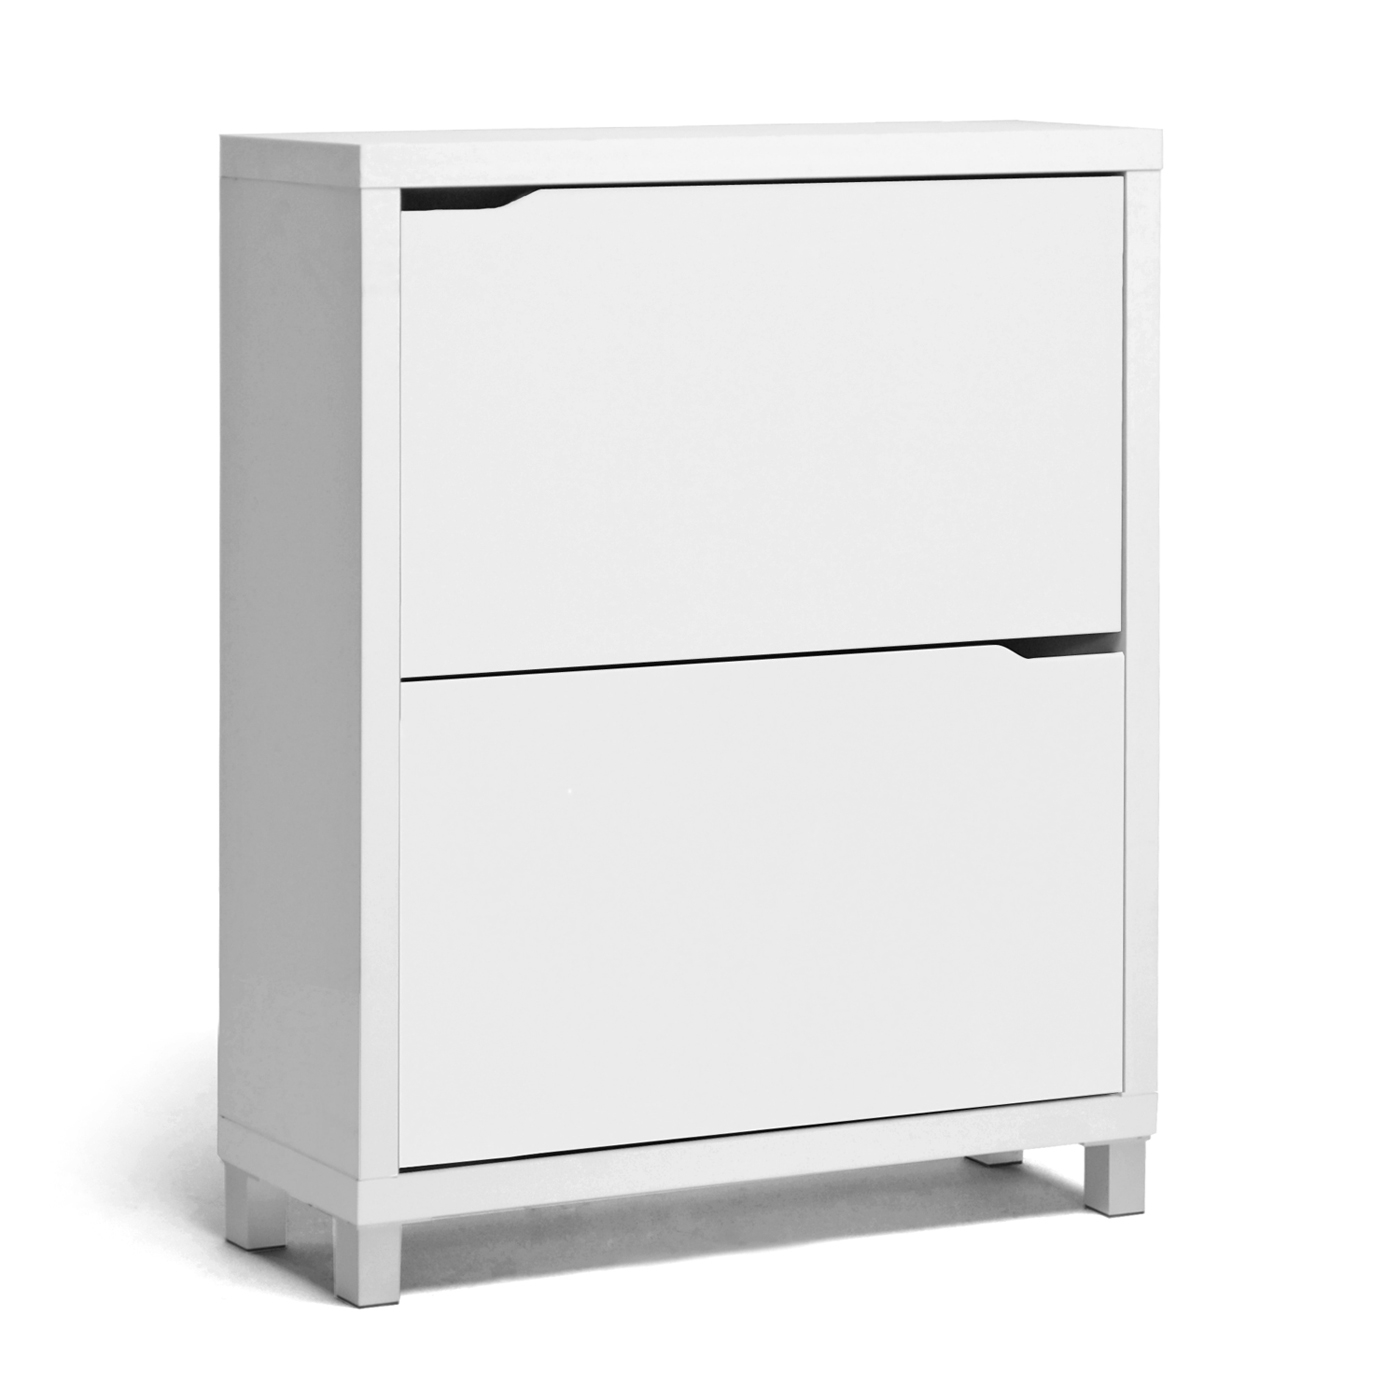 Baxton Studio Simms White Modern Shoe Cabinet | Affordable Modern Design |  Baxton Studio